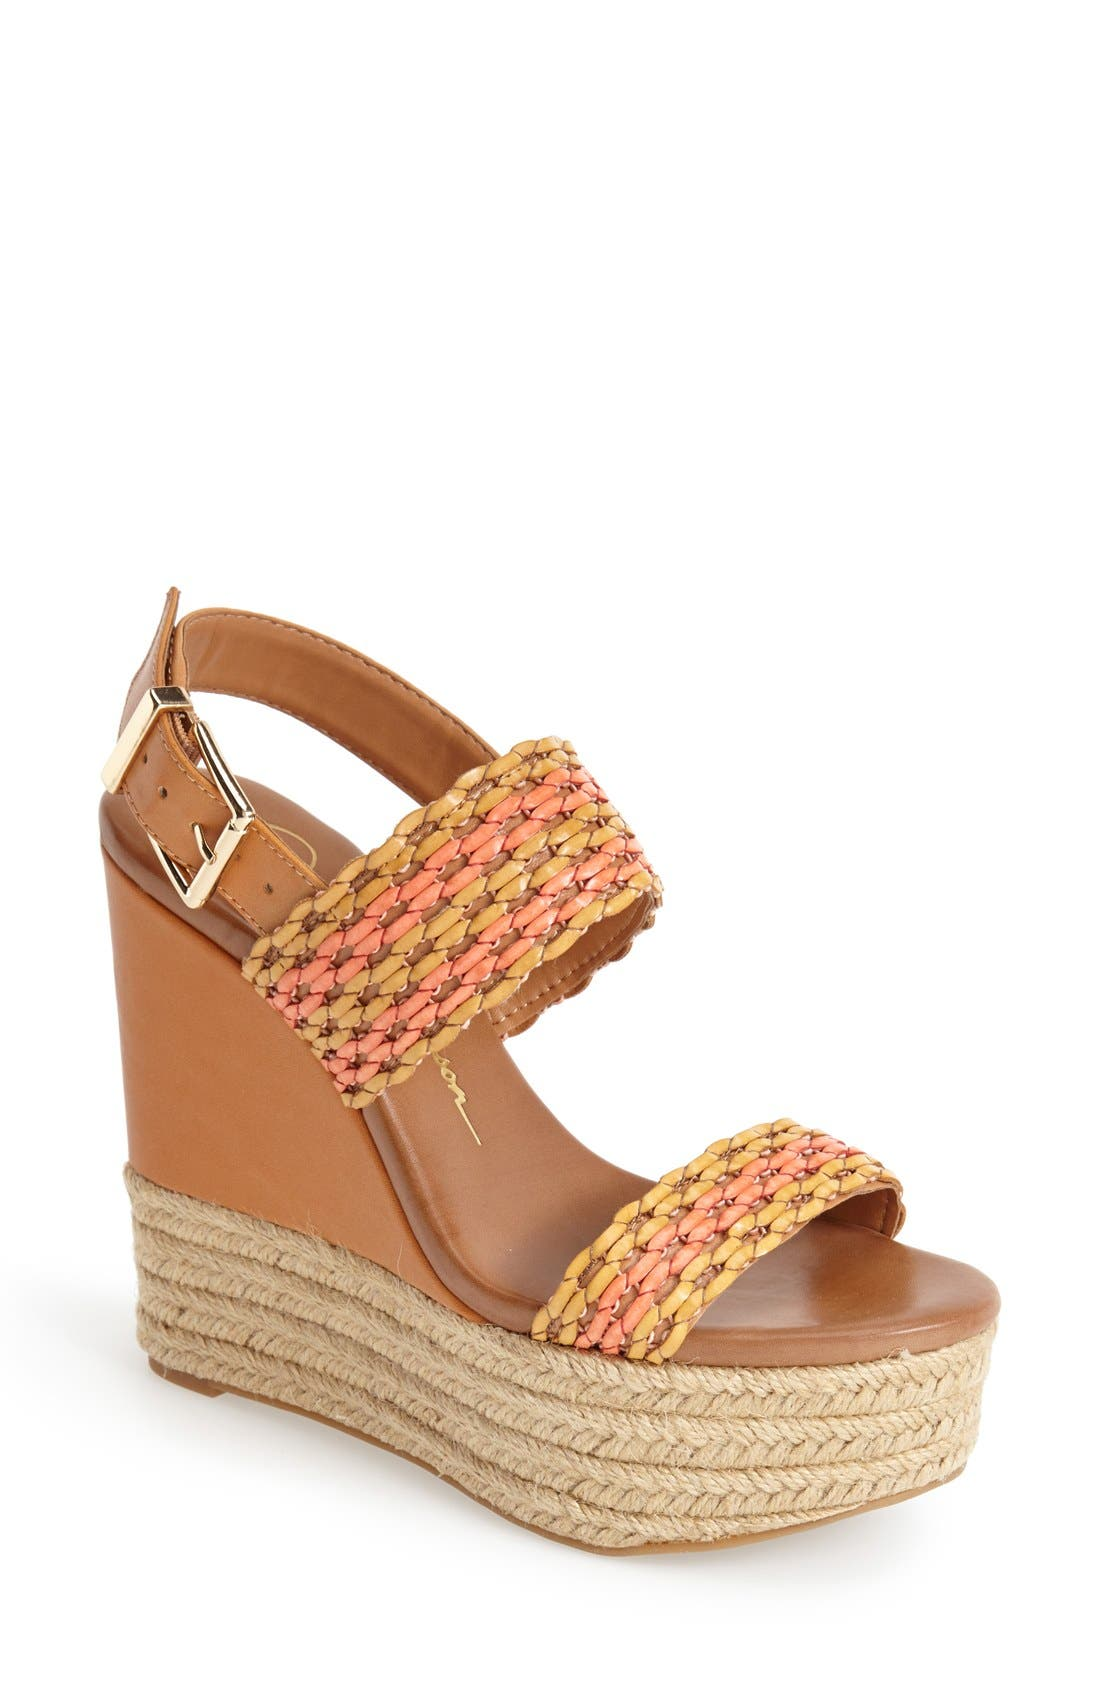 Main Image - Jessica Simpson 'Allyn' Wedge Platform Leather Sandal (Women)